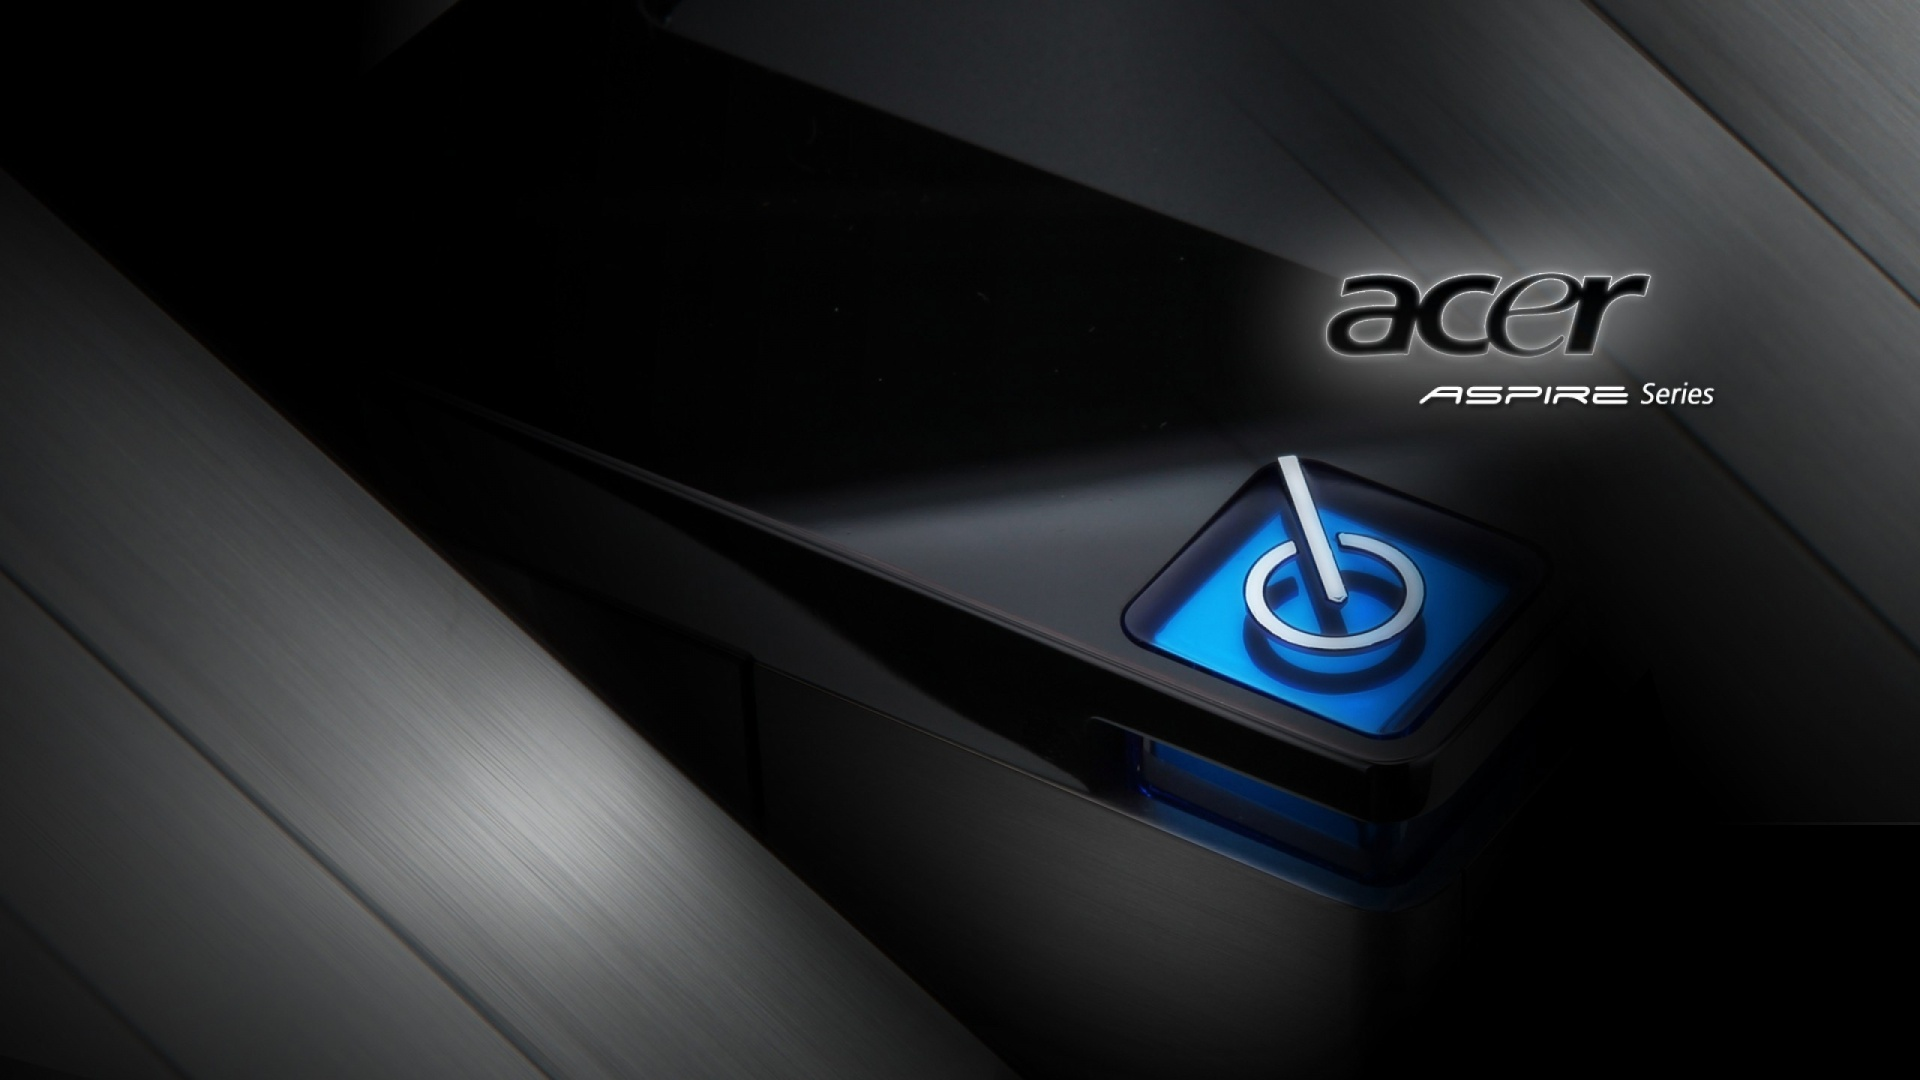 Power Acer Wallpaper here you can see The Blue Power Acer Wallpaper 1920x1080